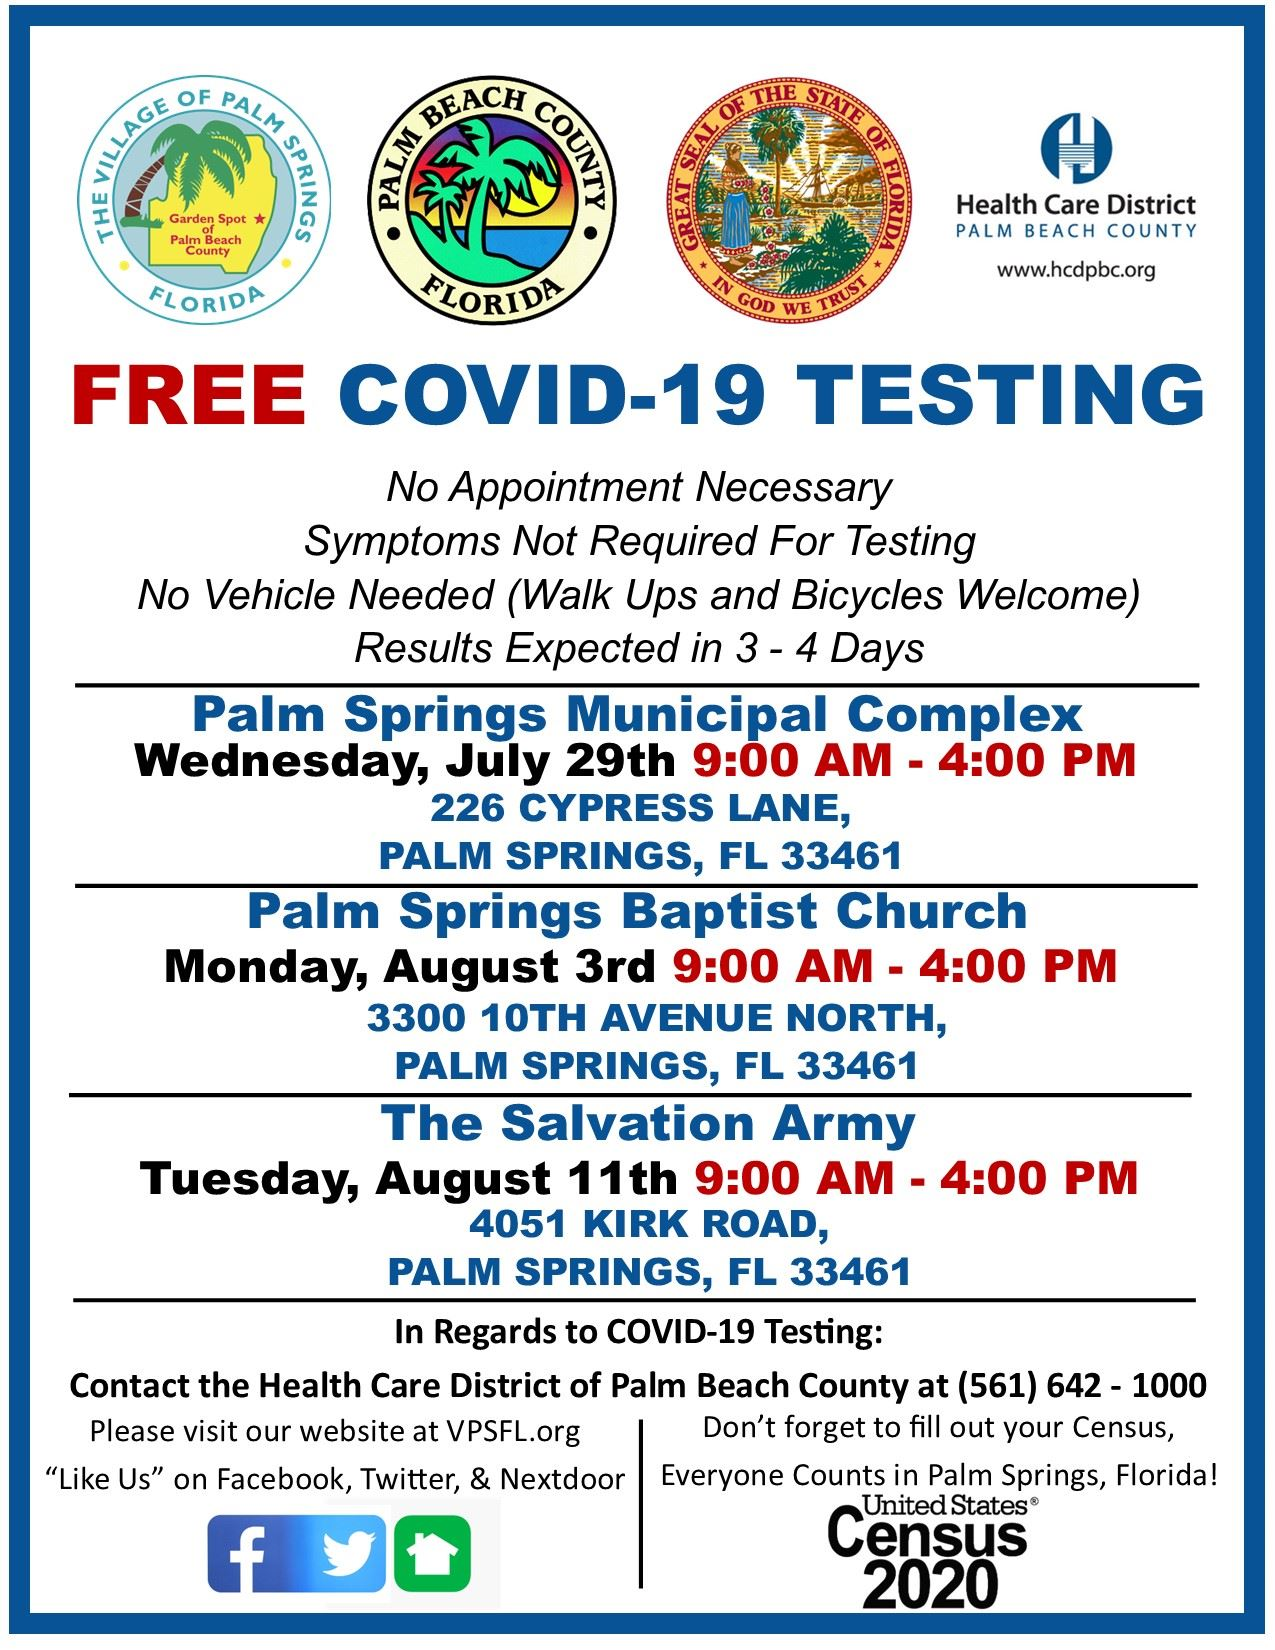 COVID-19 Testing Flyer 3 Sites